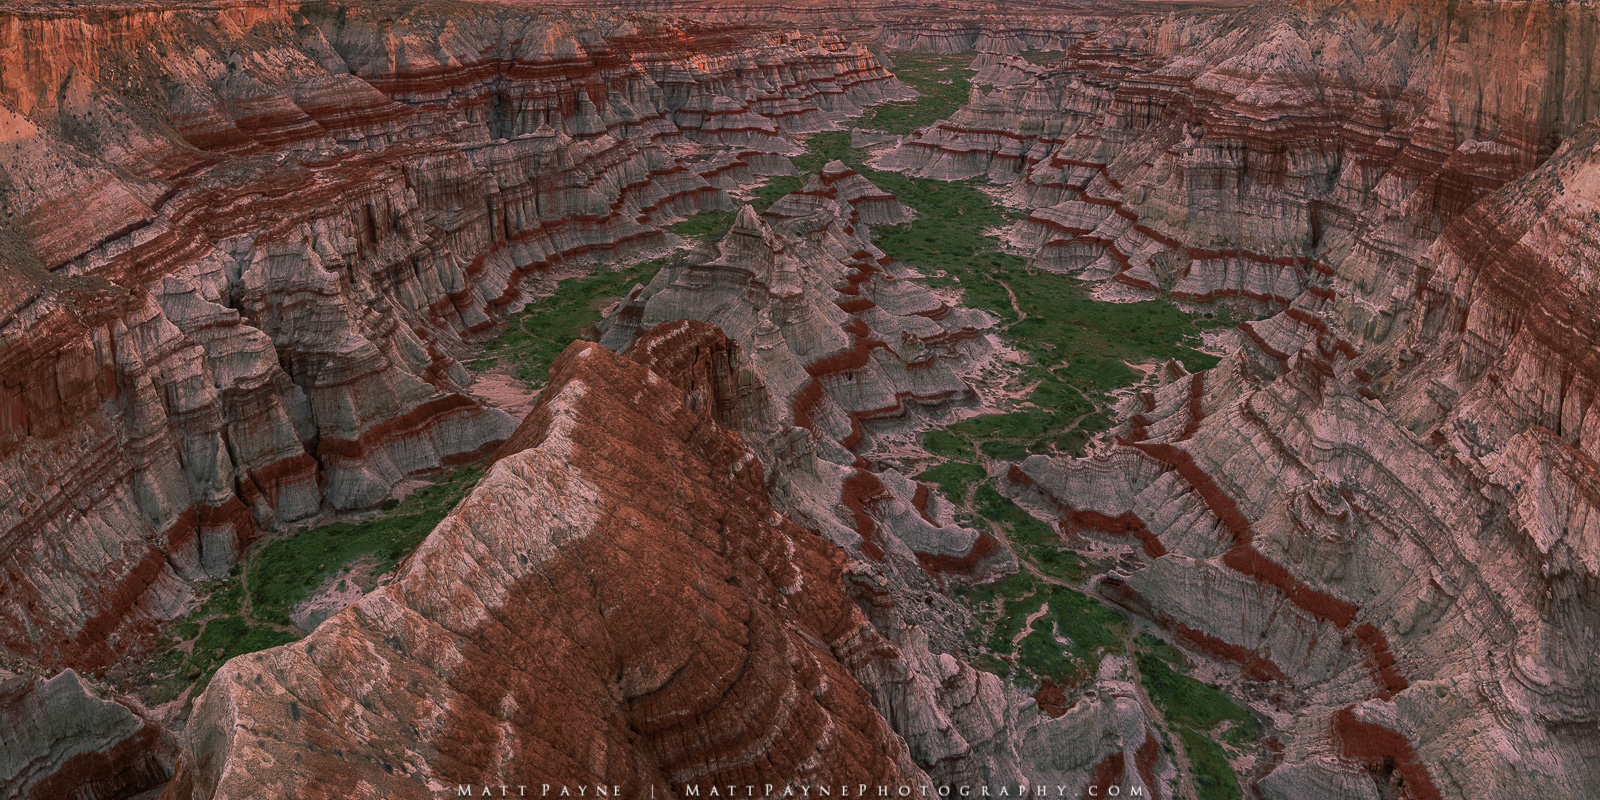 Erosion, Panorama, Ribbons, amphitheatre, canyon, desert, geologic, layers, photo